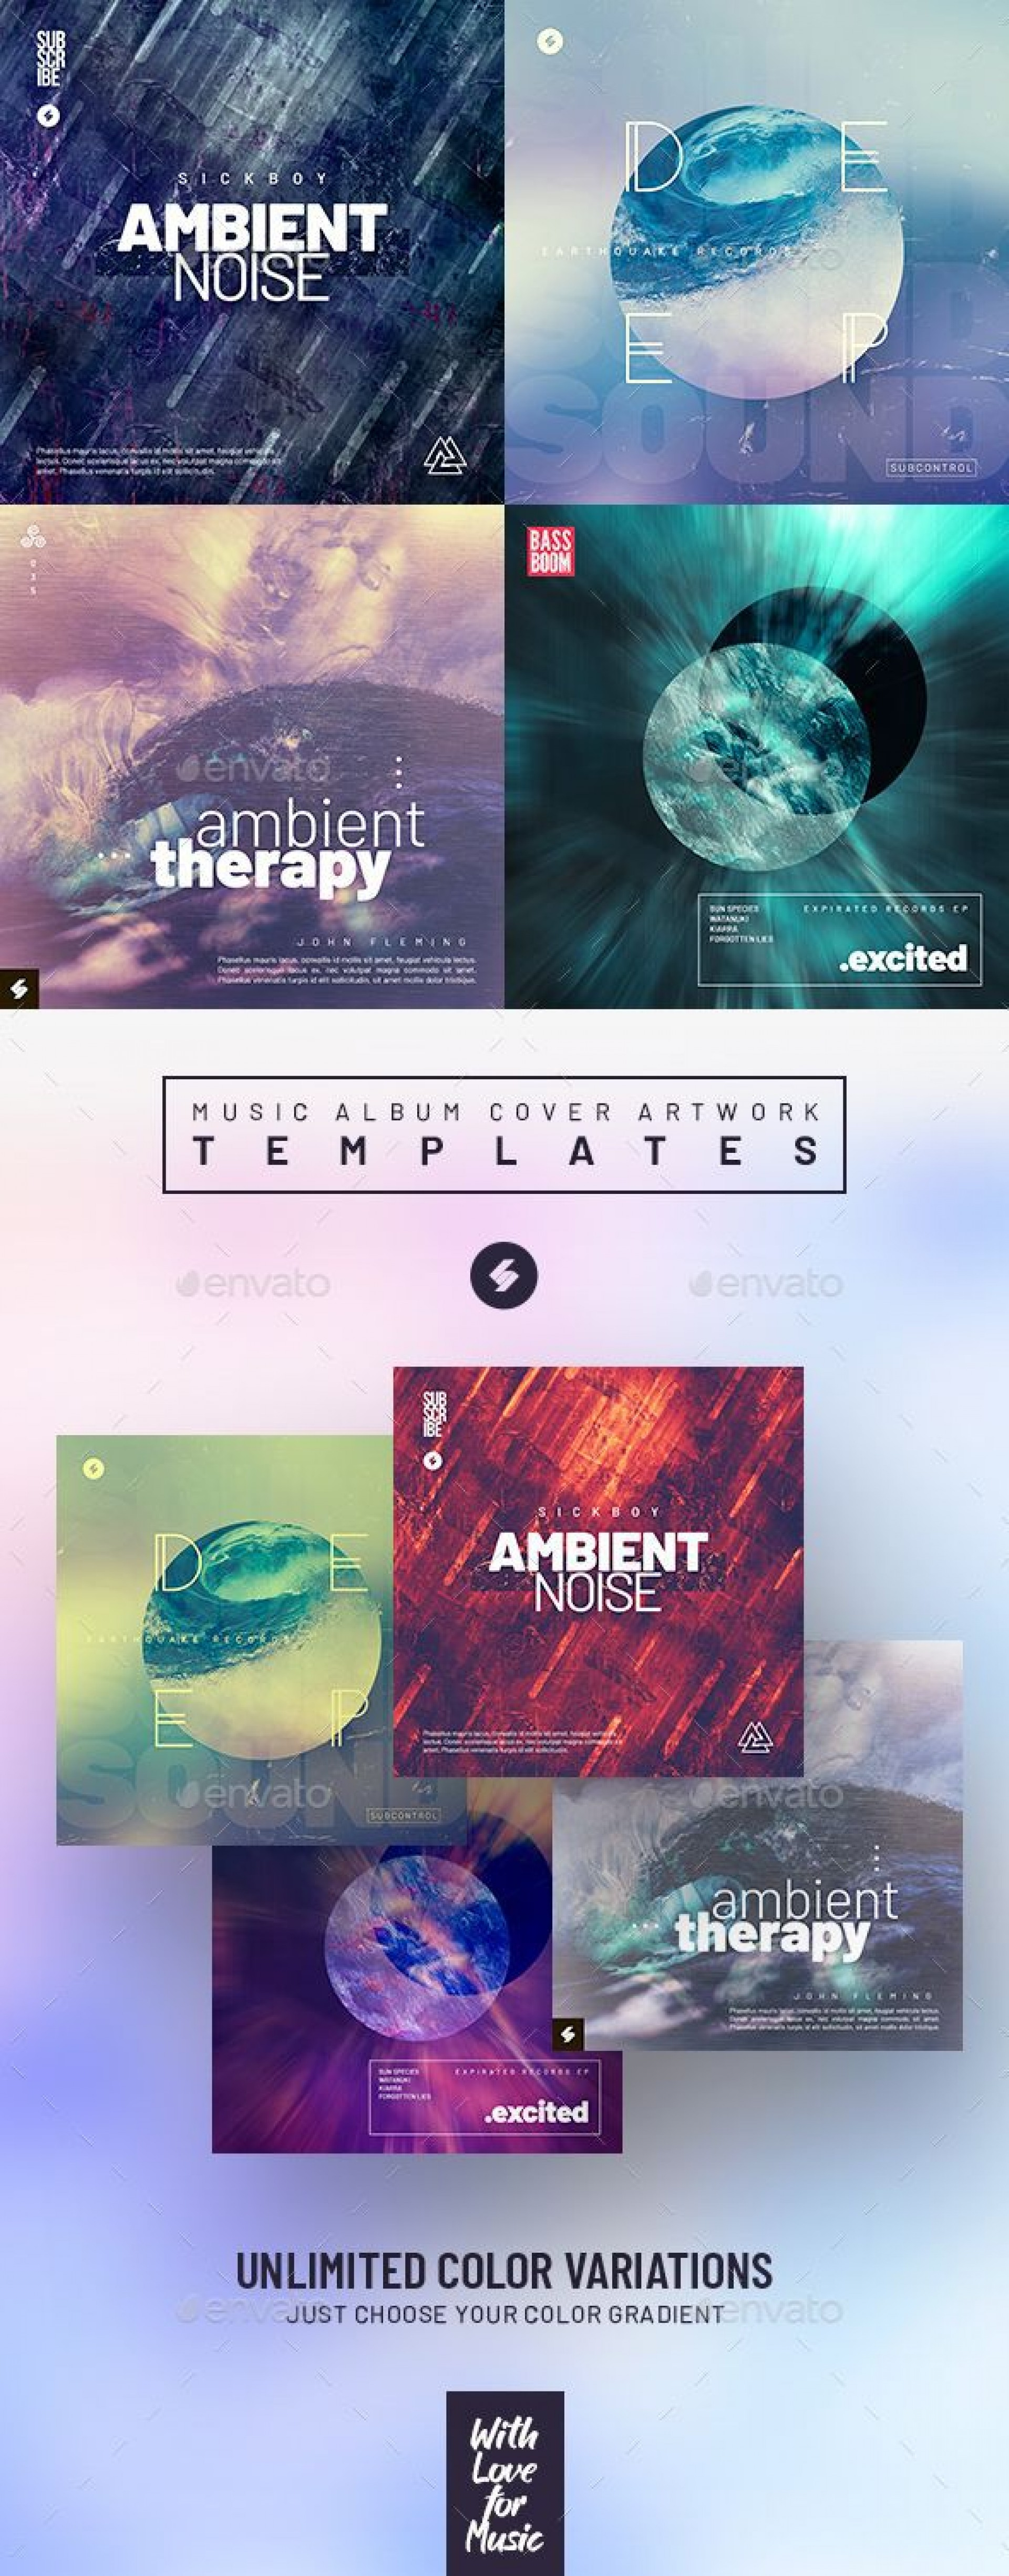 000 Astounding Music Cd Cover Design Template Free Download Photo 1920